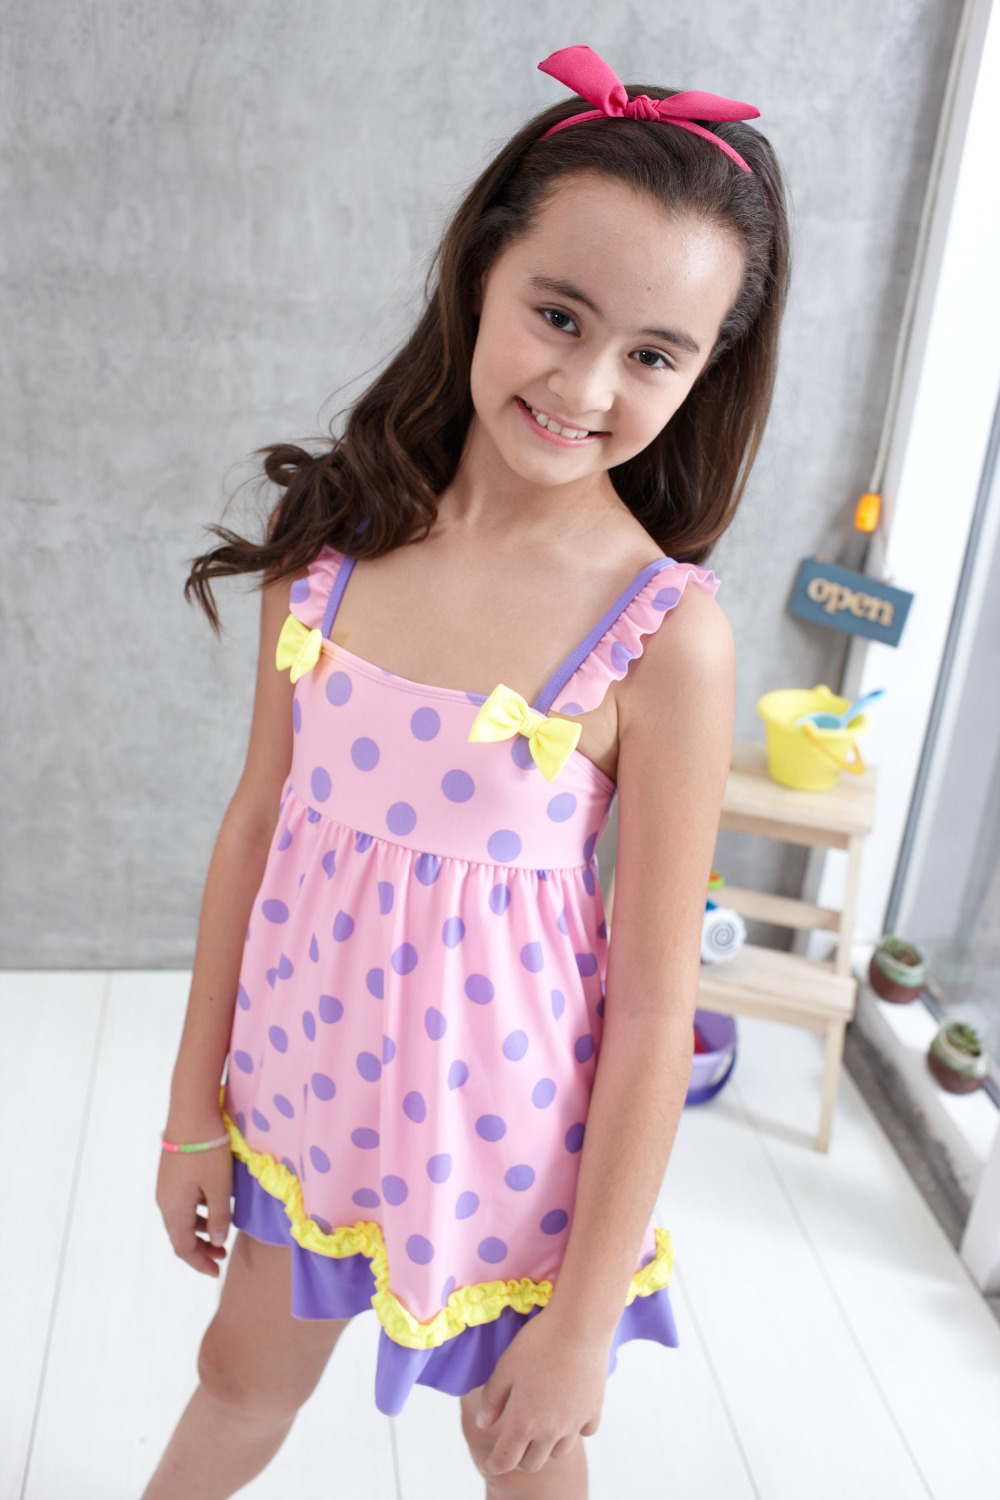 This girls bathing suit perfect for summer vacation,beachwear Girls Swimsuit Falbala High Waisted Bikini Set Halter Neck Swimwear Dots Printing Bathing Suits. by XUNYU. $ - $ $ 16 $ 20 99 Prime. FREE Shipping on eligible orders. Some sizes/colors are Prime eligible.